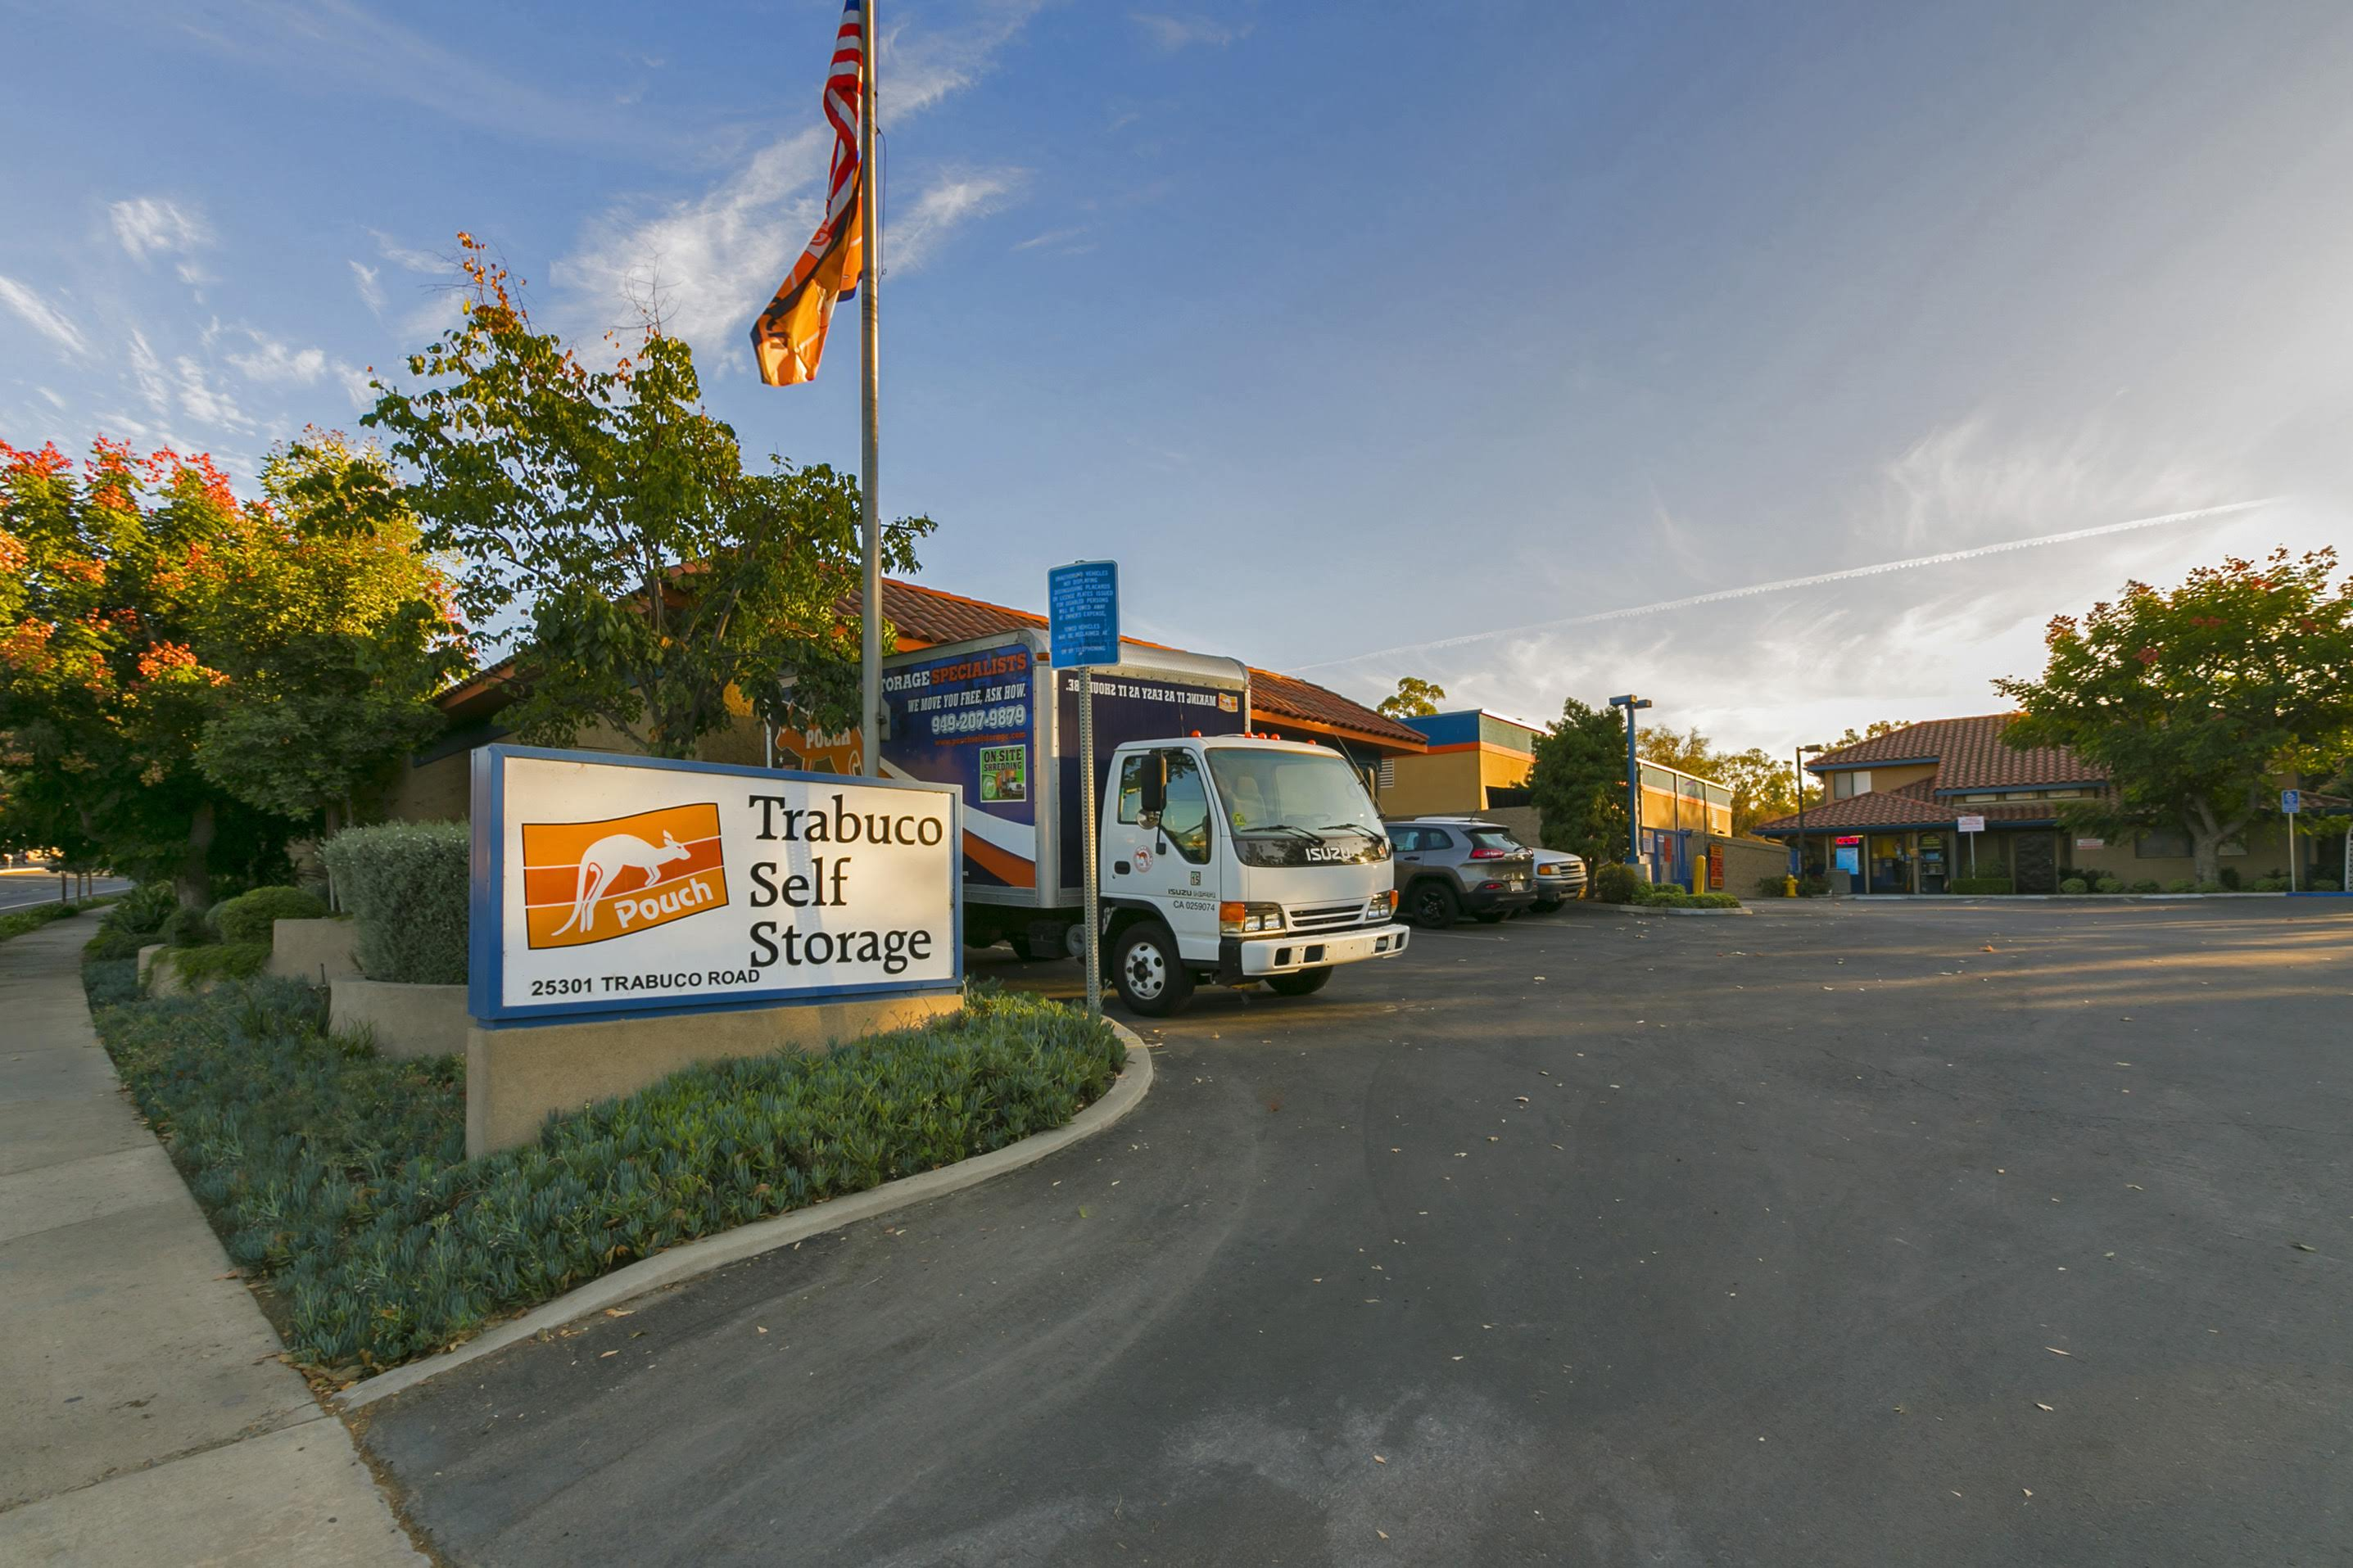 Trabuco Self Storage front sign and moving truck